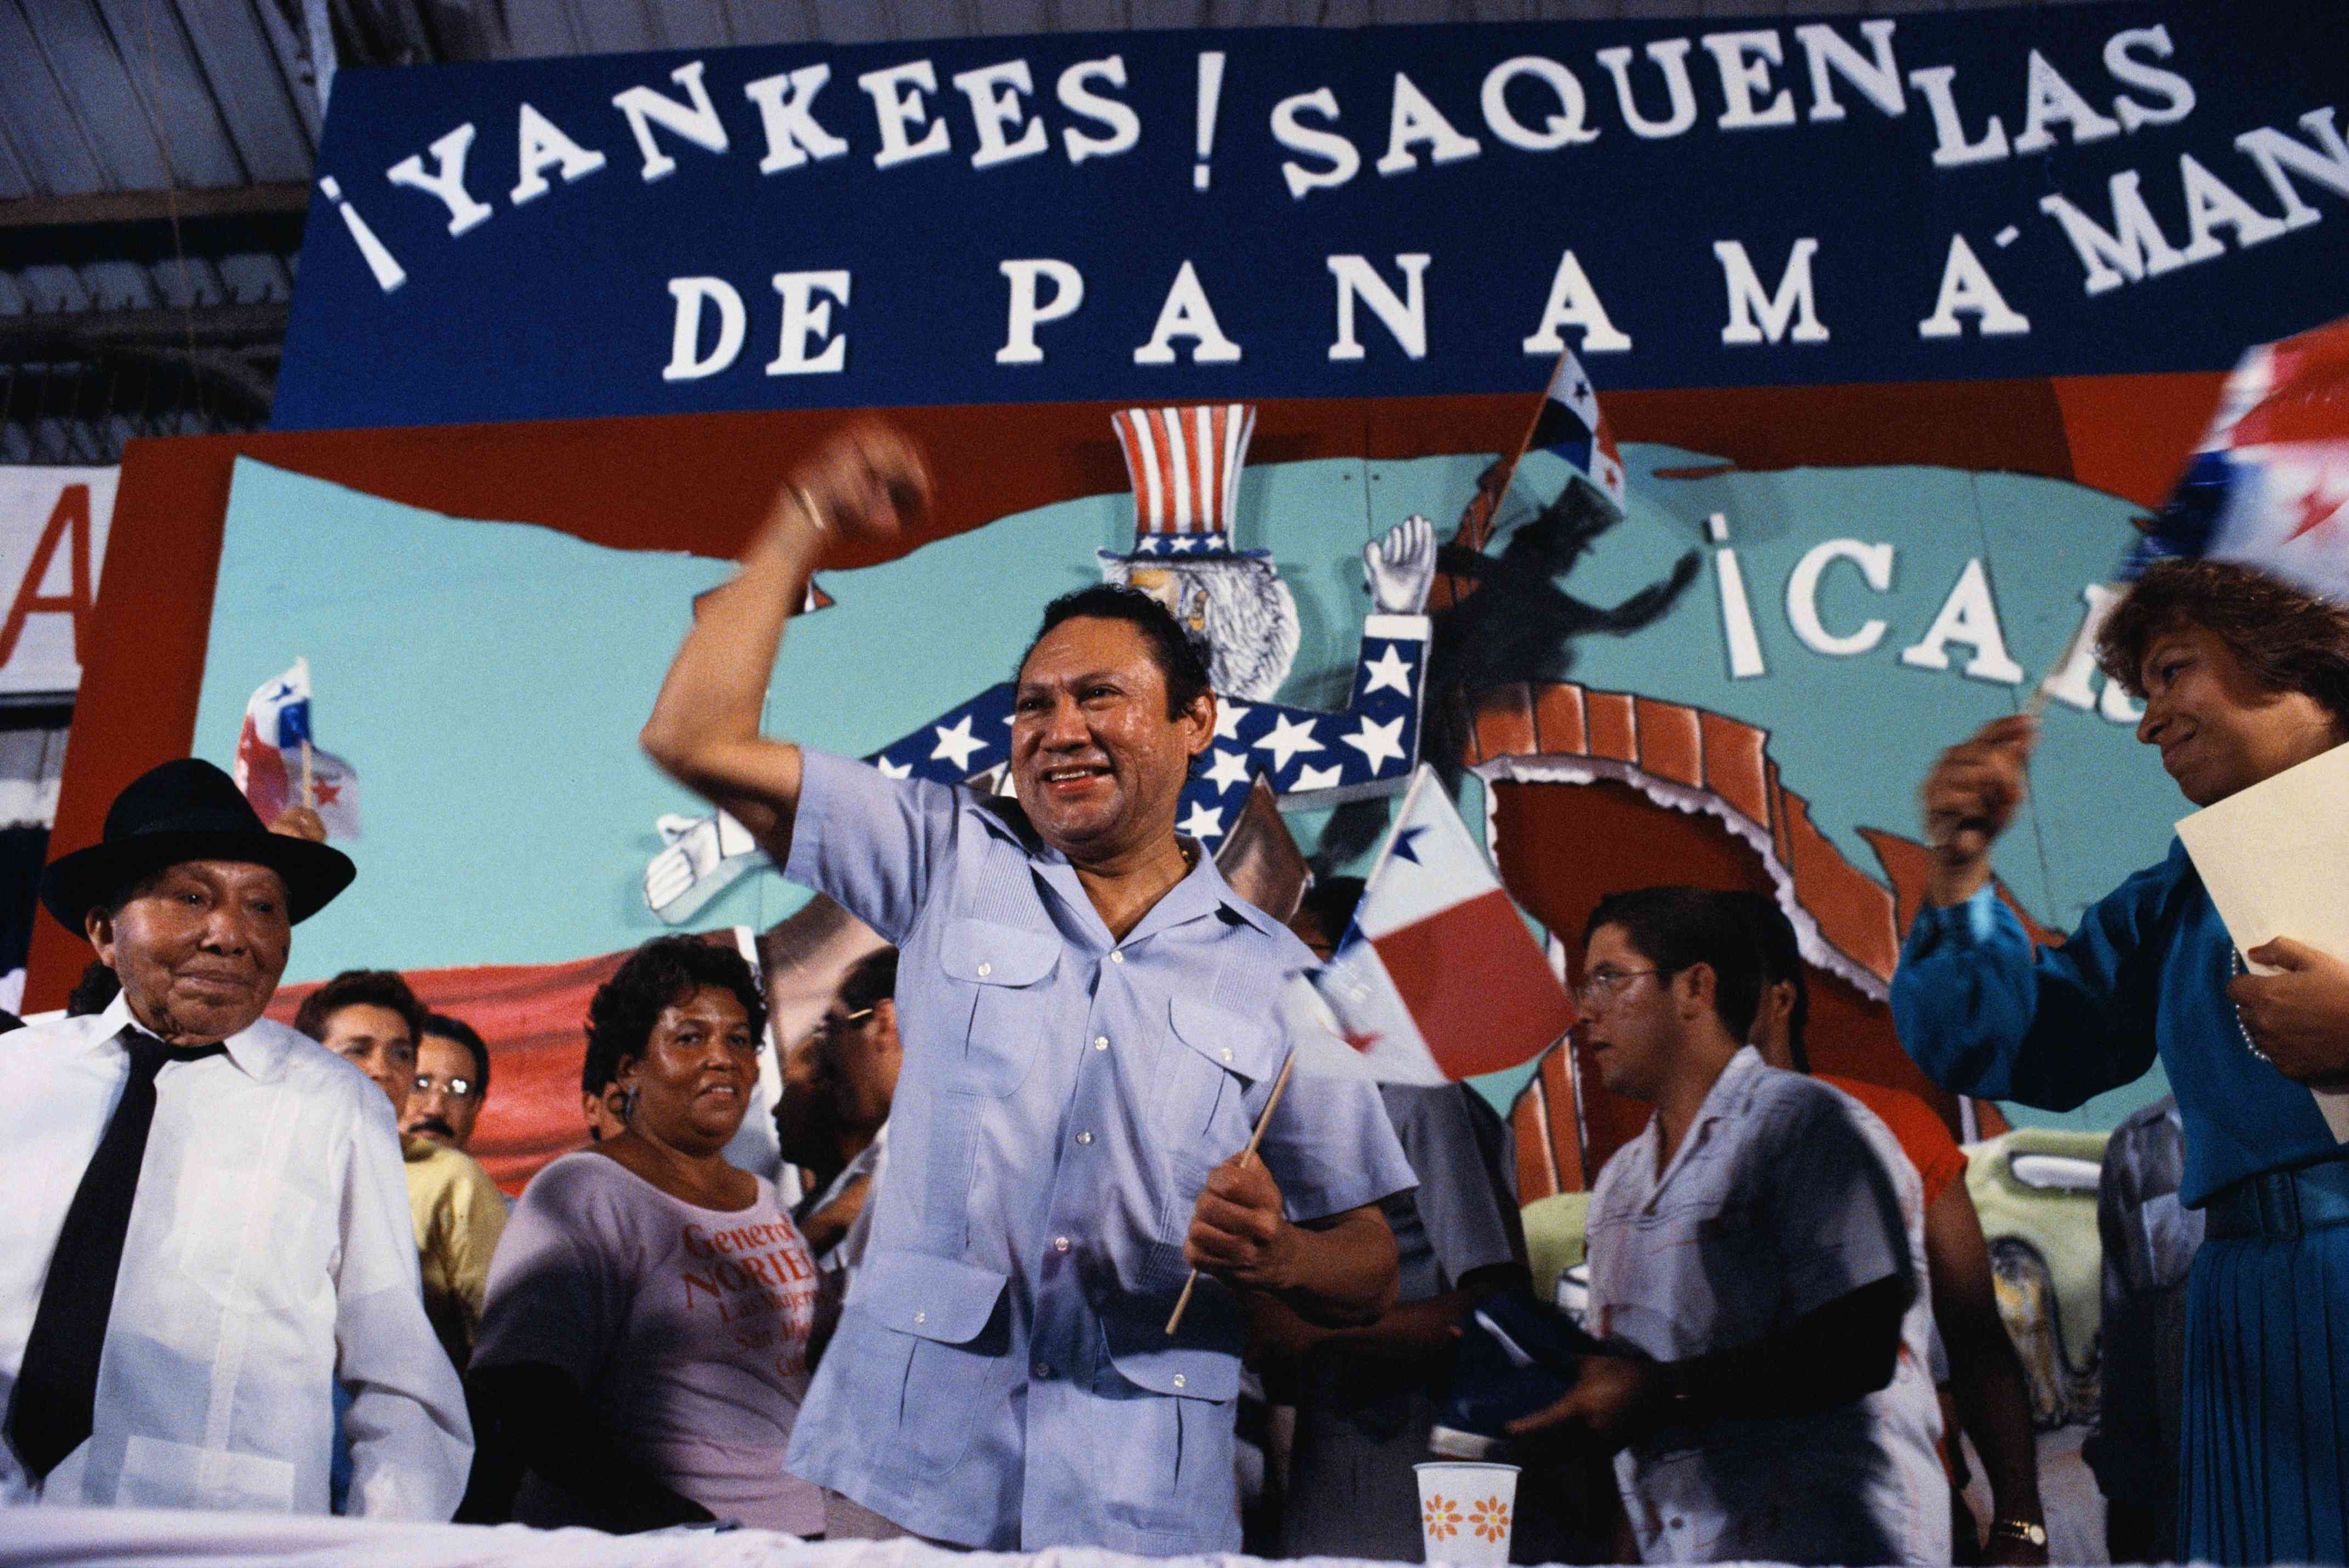 Manuel Noriega with anti-imperialist message, 1988